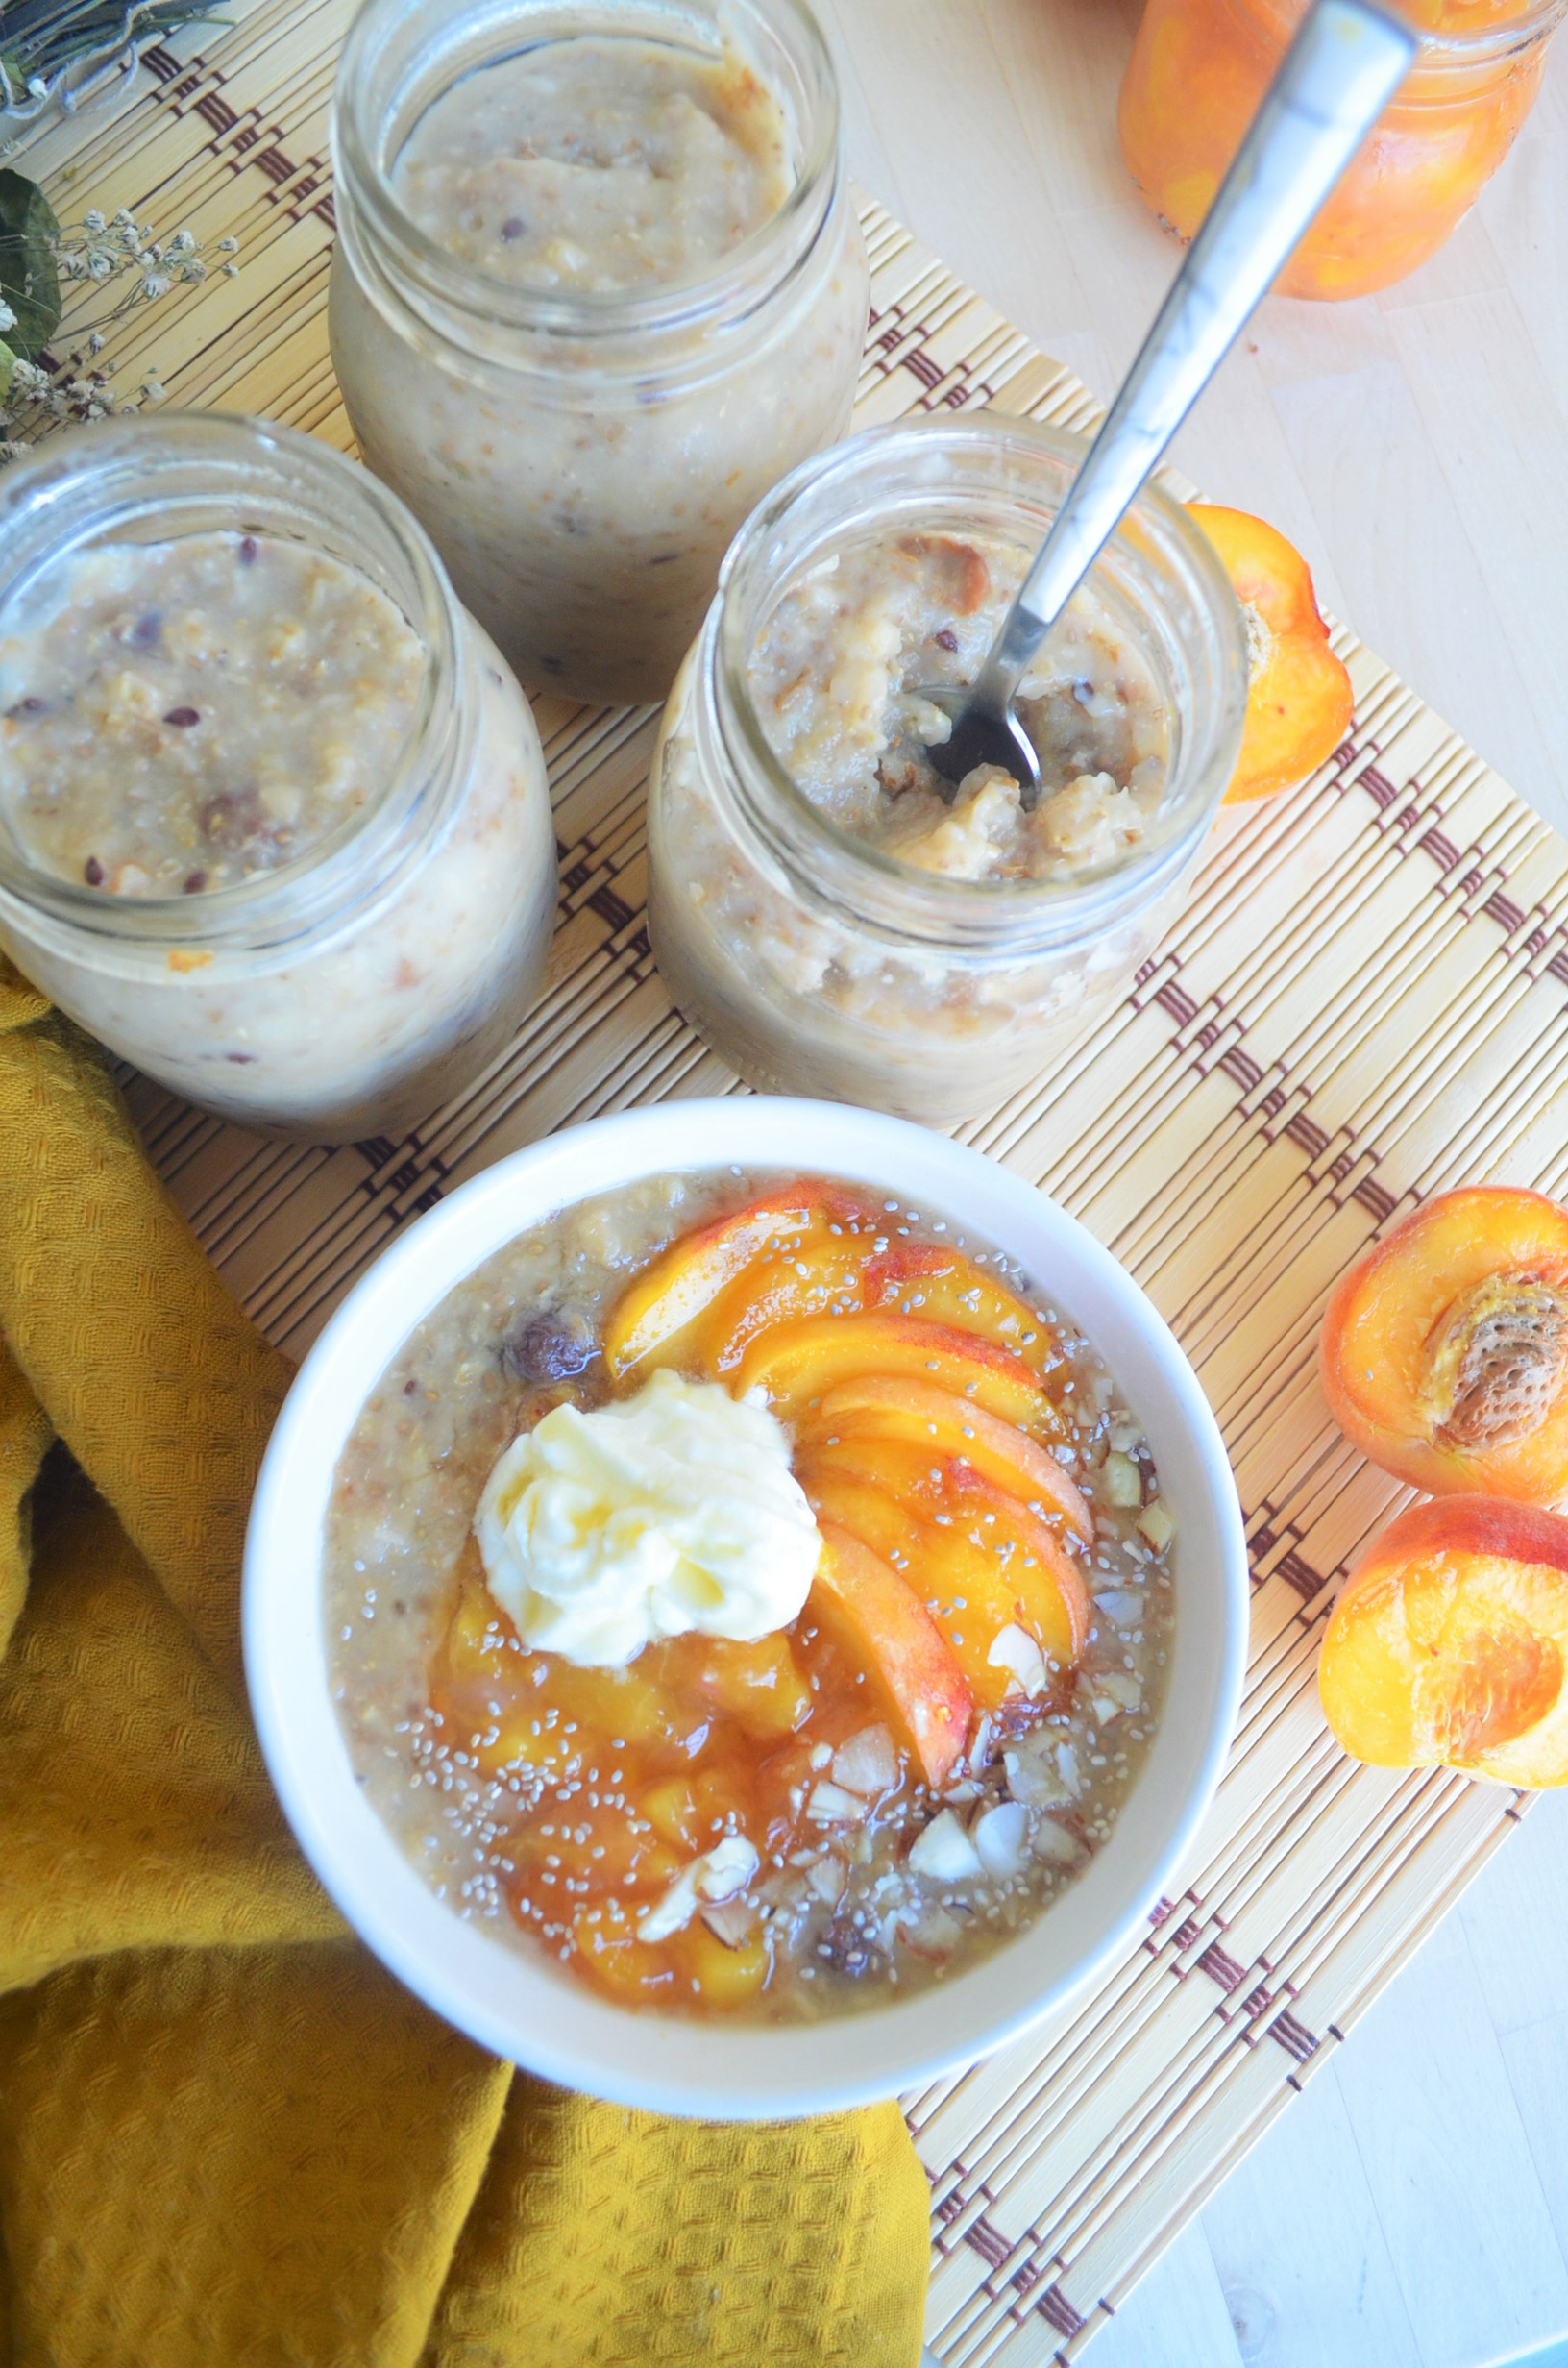 Peaches and Cream Oatmeal For One